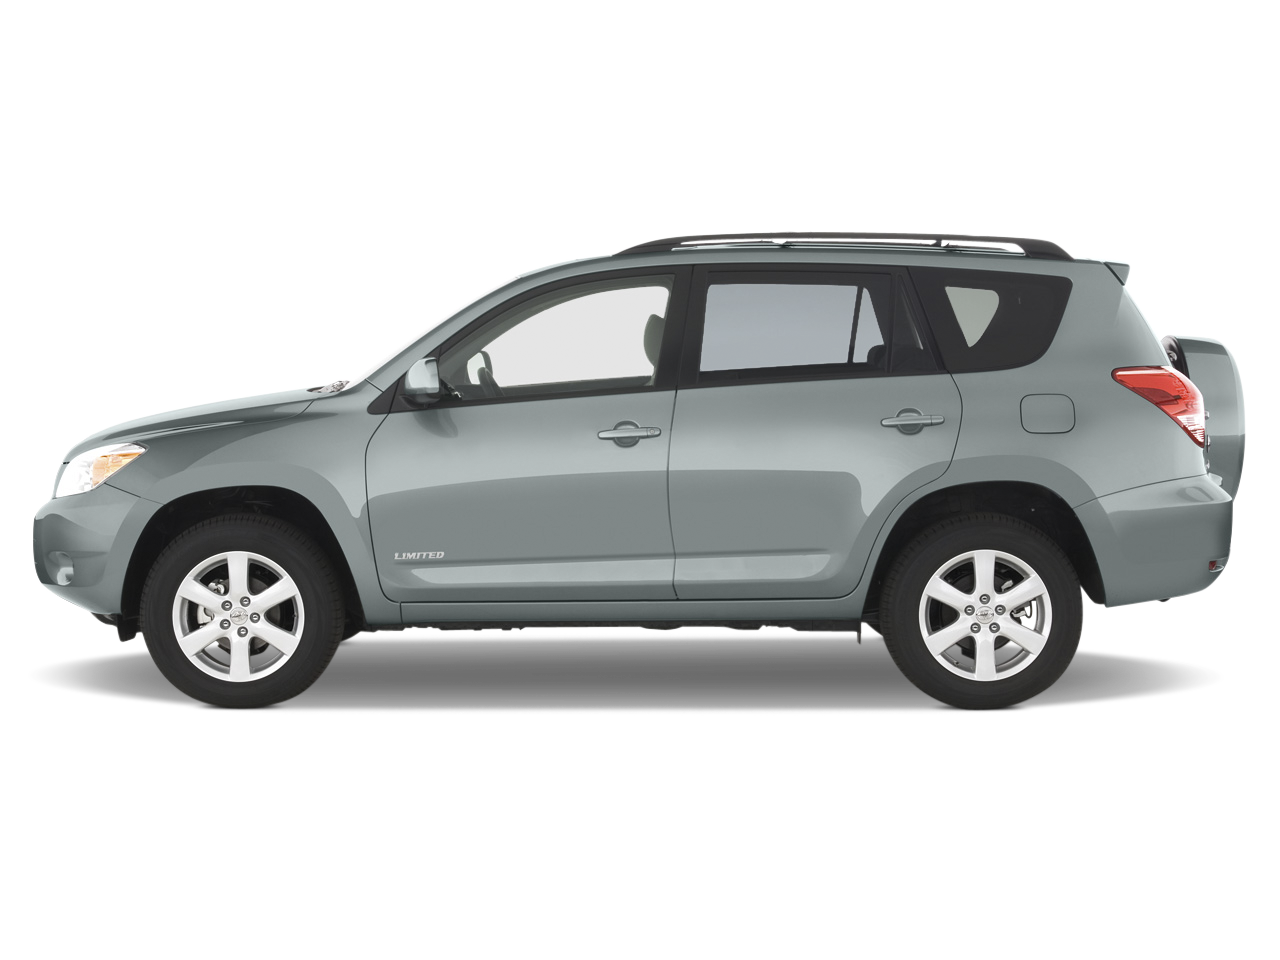 recall central toyota rav4s highlander highlander. Black Bedroom Furniture Sets. Home Design Ideas